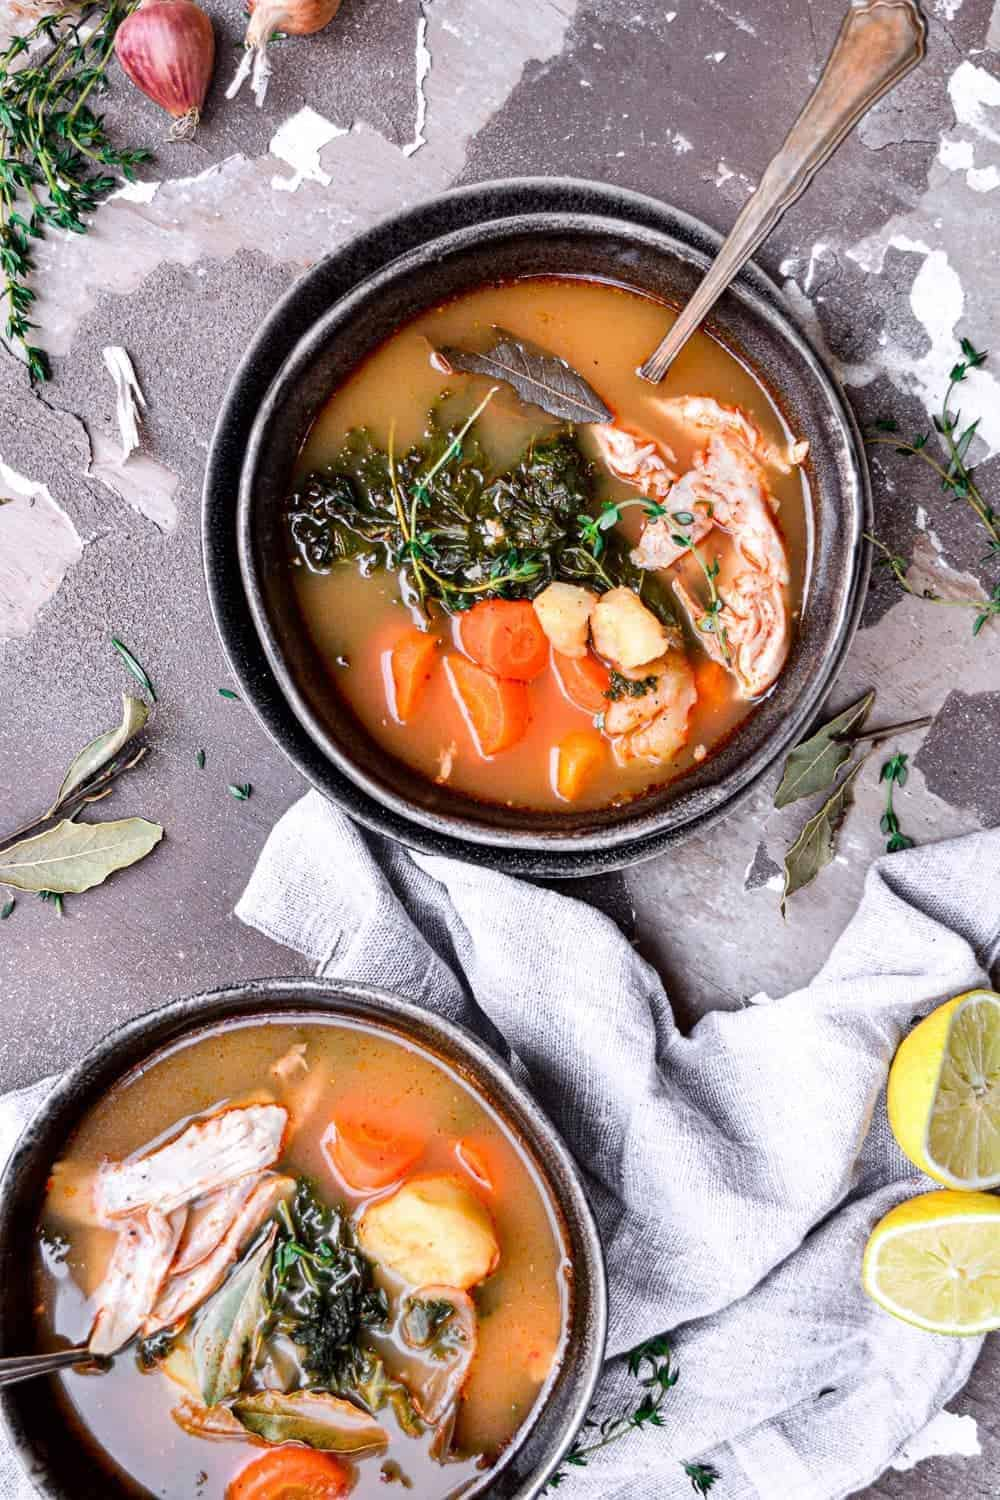 Two bowls of soup ready to eat